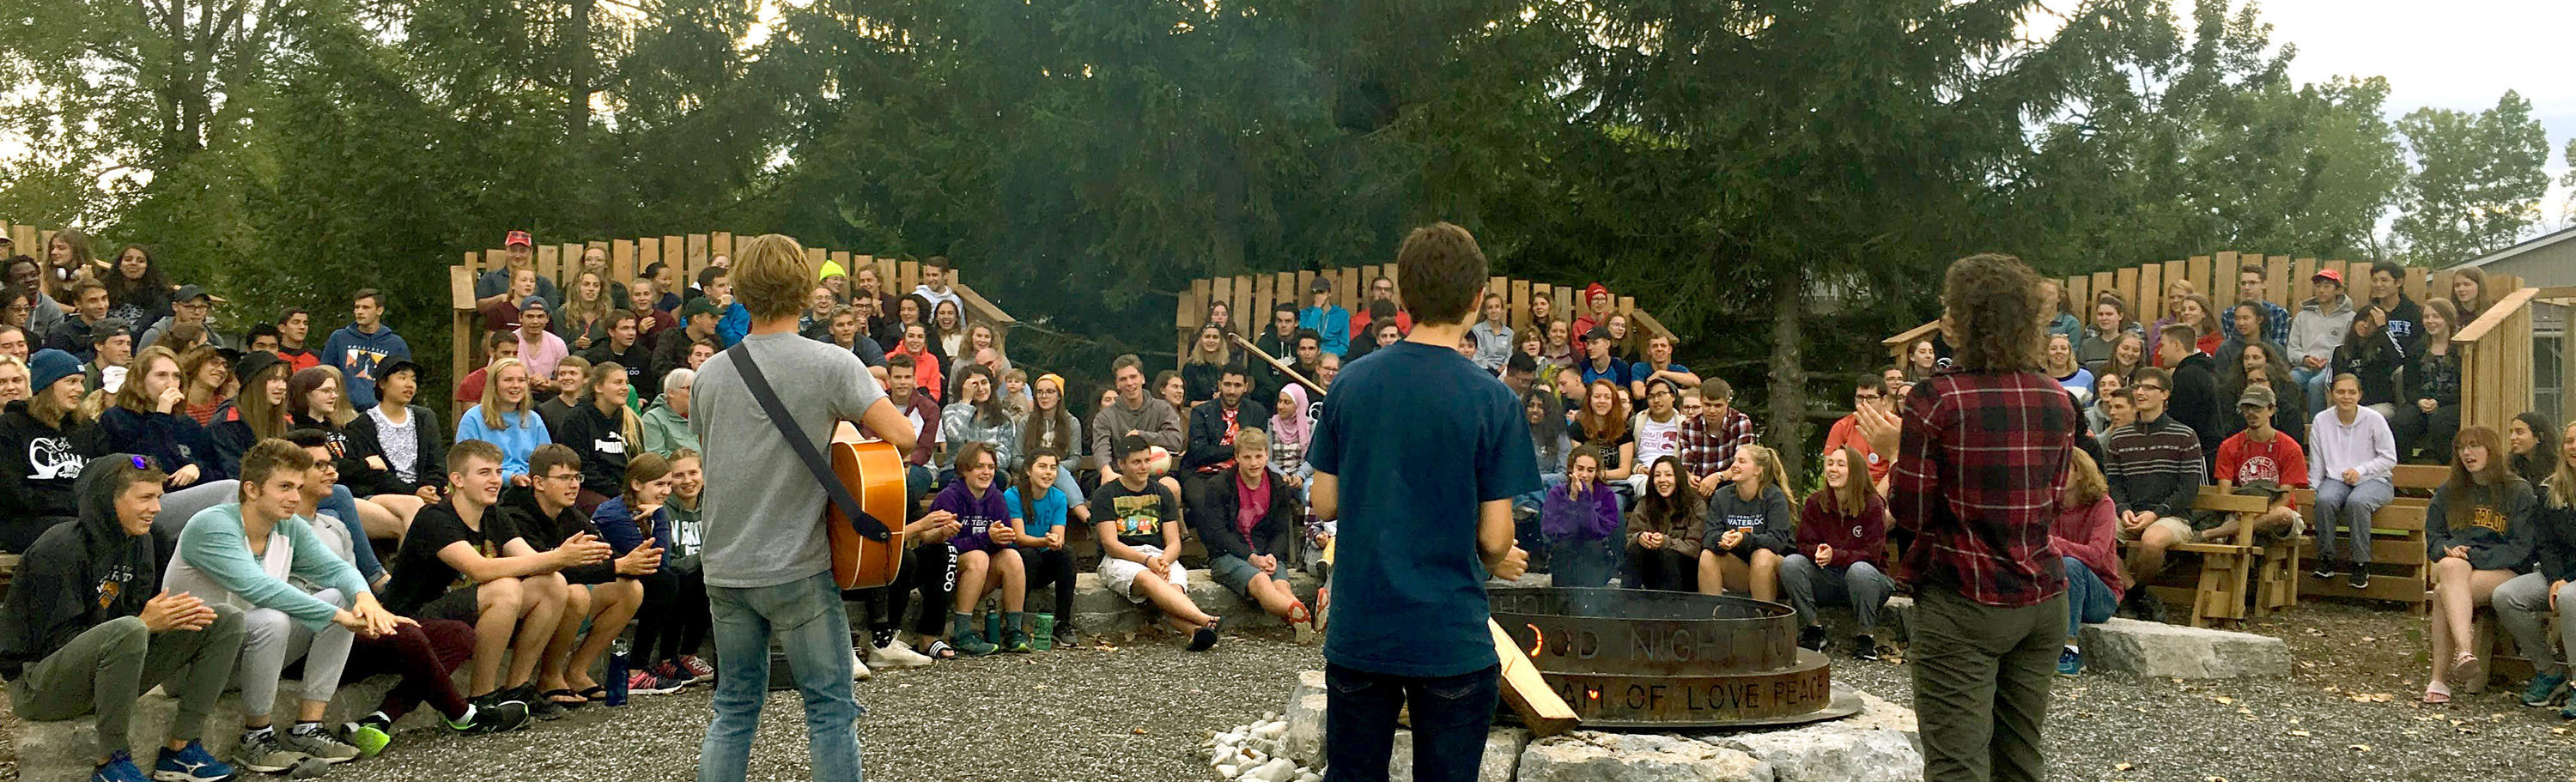 Students gathered around a campfire at the annual All-College Retreat